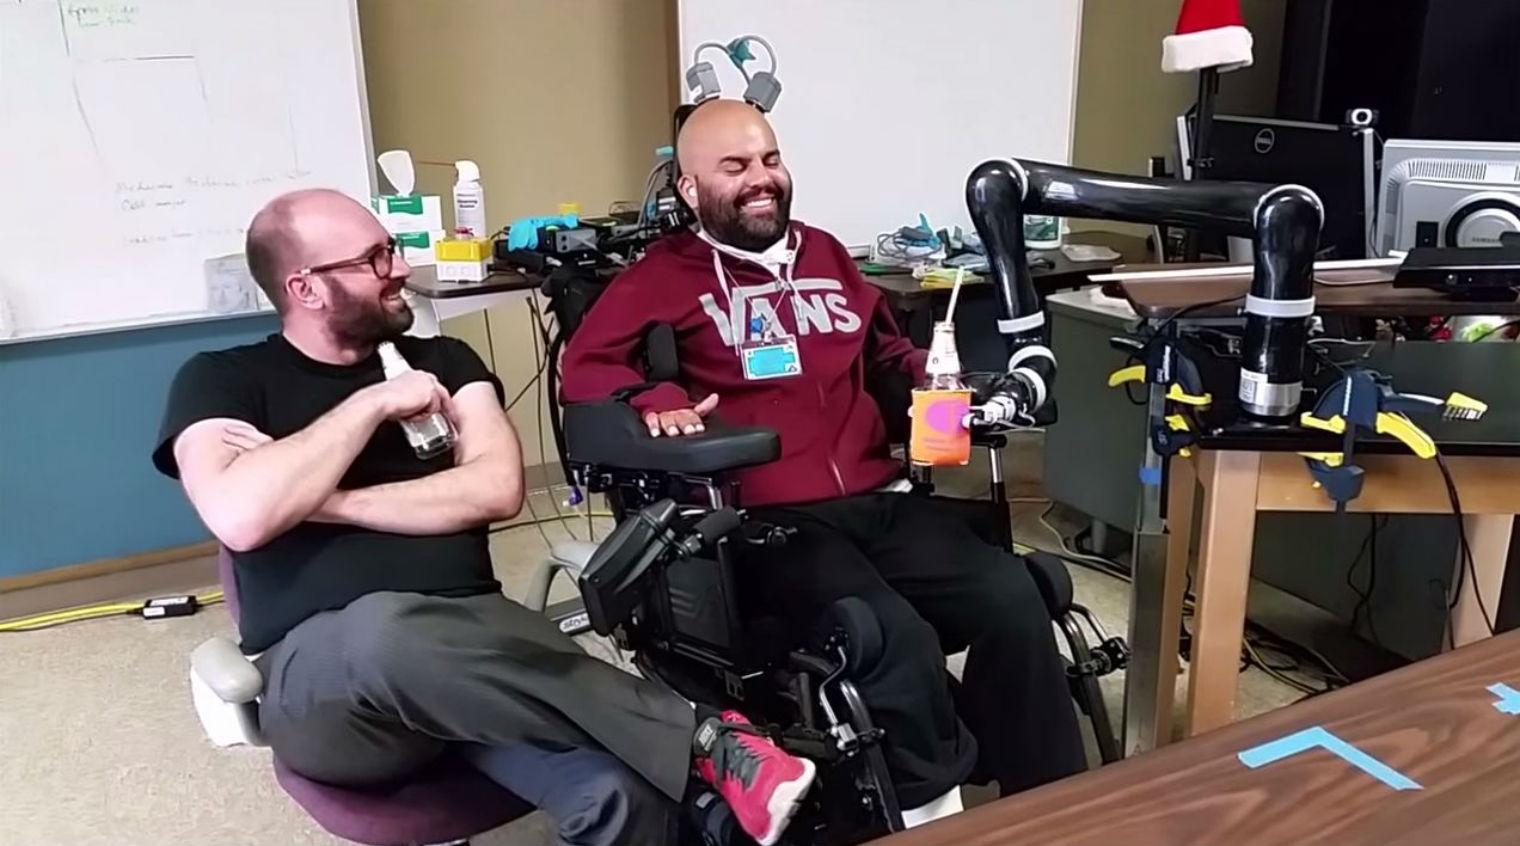 Man controls bionic arm with his brain, uses it to drink beer | indy100